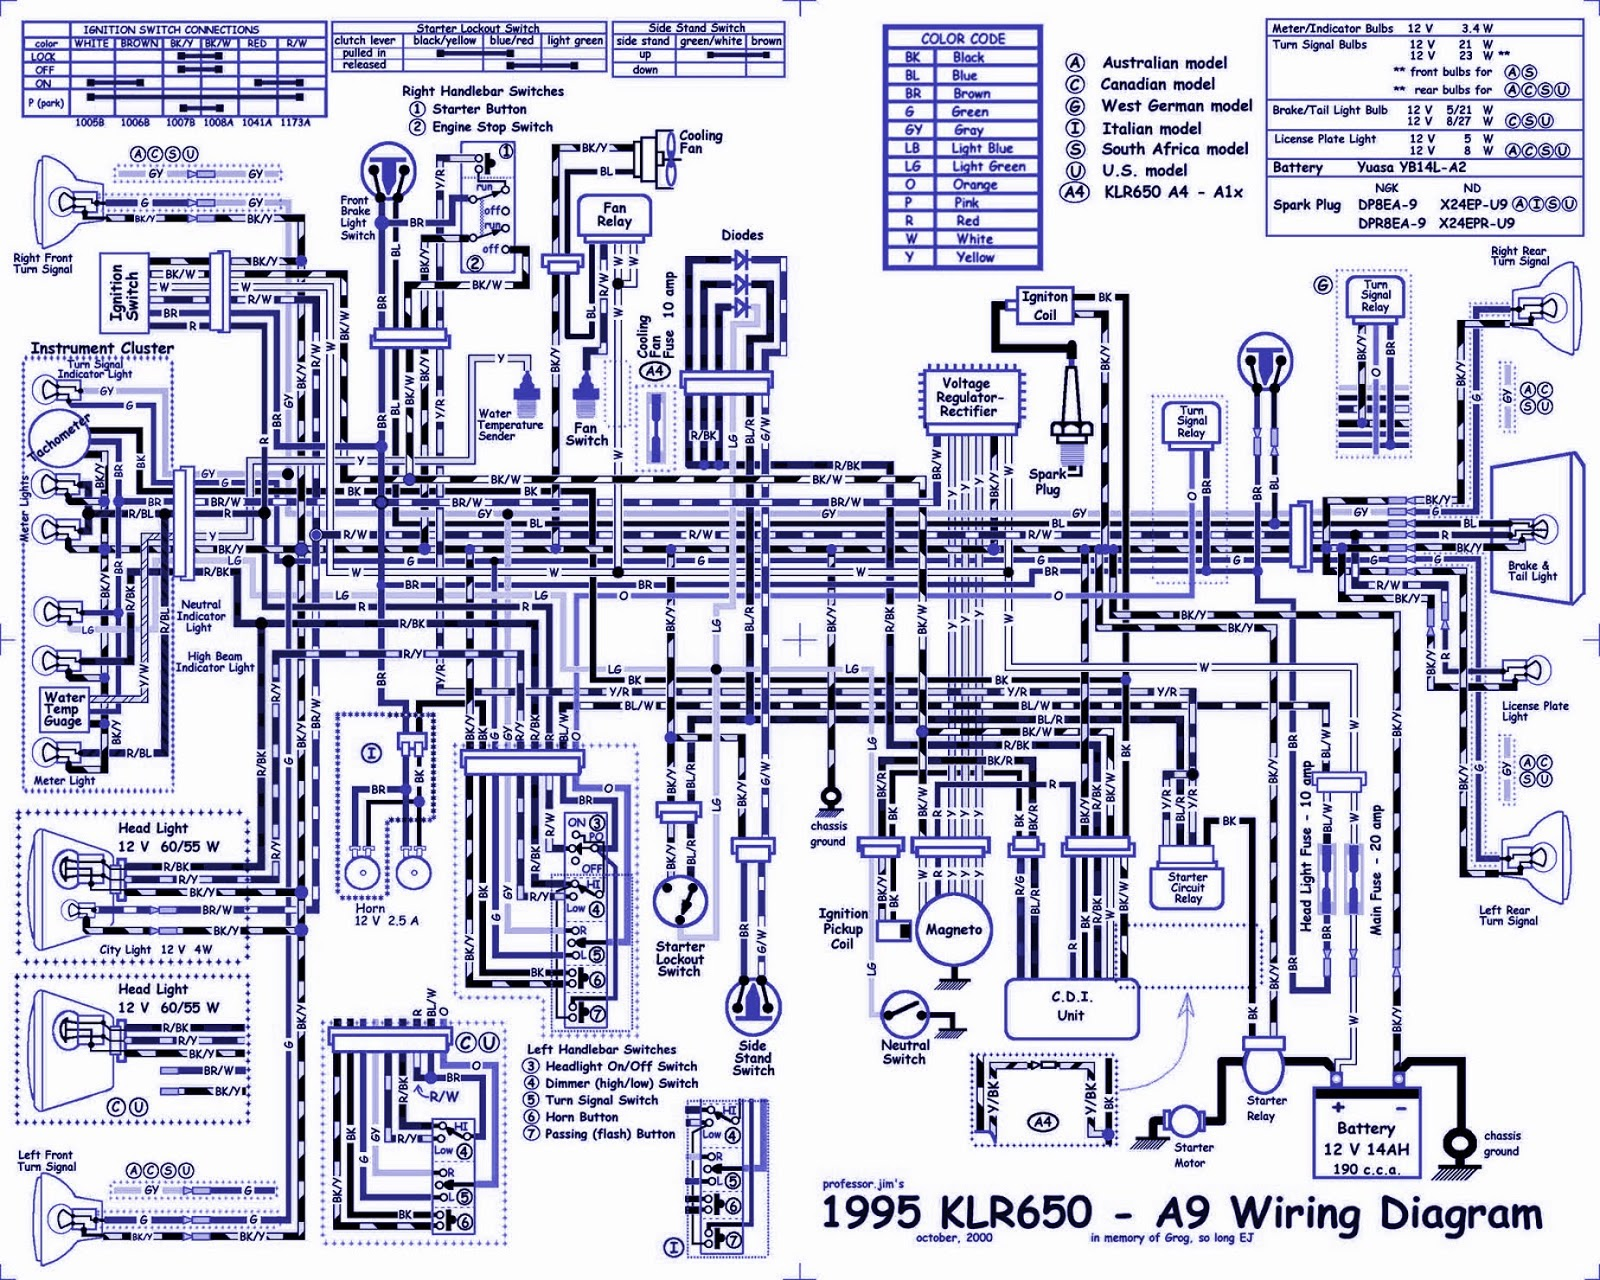 1995 Chevy Impala Ss Engine Diagram Electrical Schematics Pickup Wiring 95 Illustration Of U2022 1967